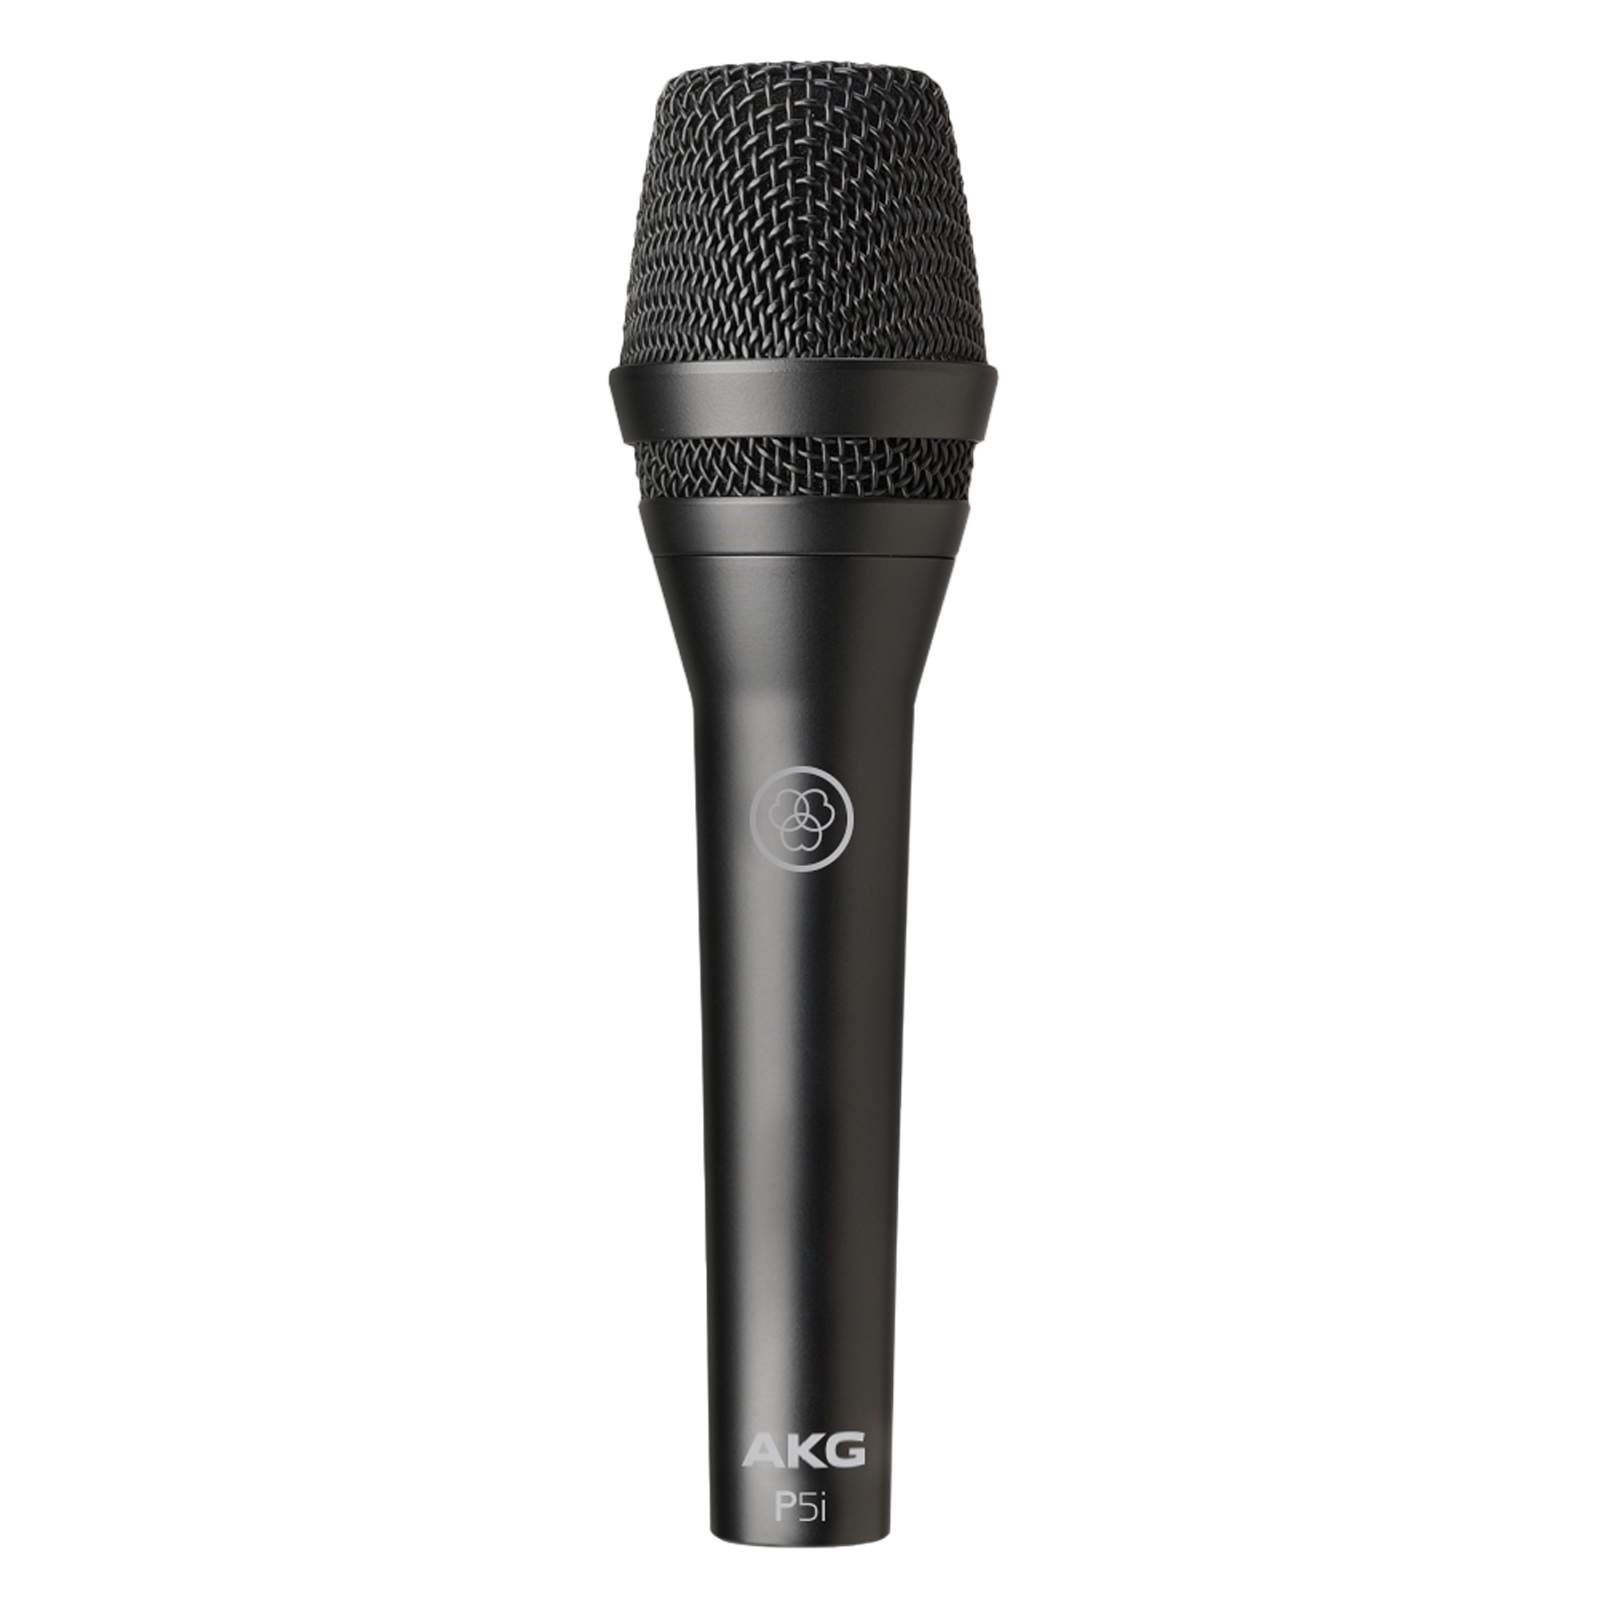 P5i - Black - Dynamic vocal microphone with HARMAN Connected PA compatibility - Hero